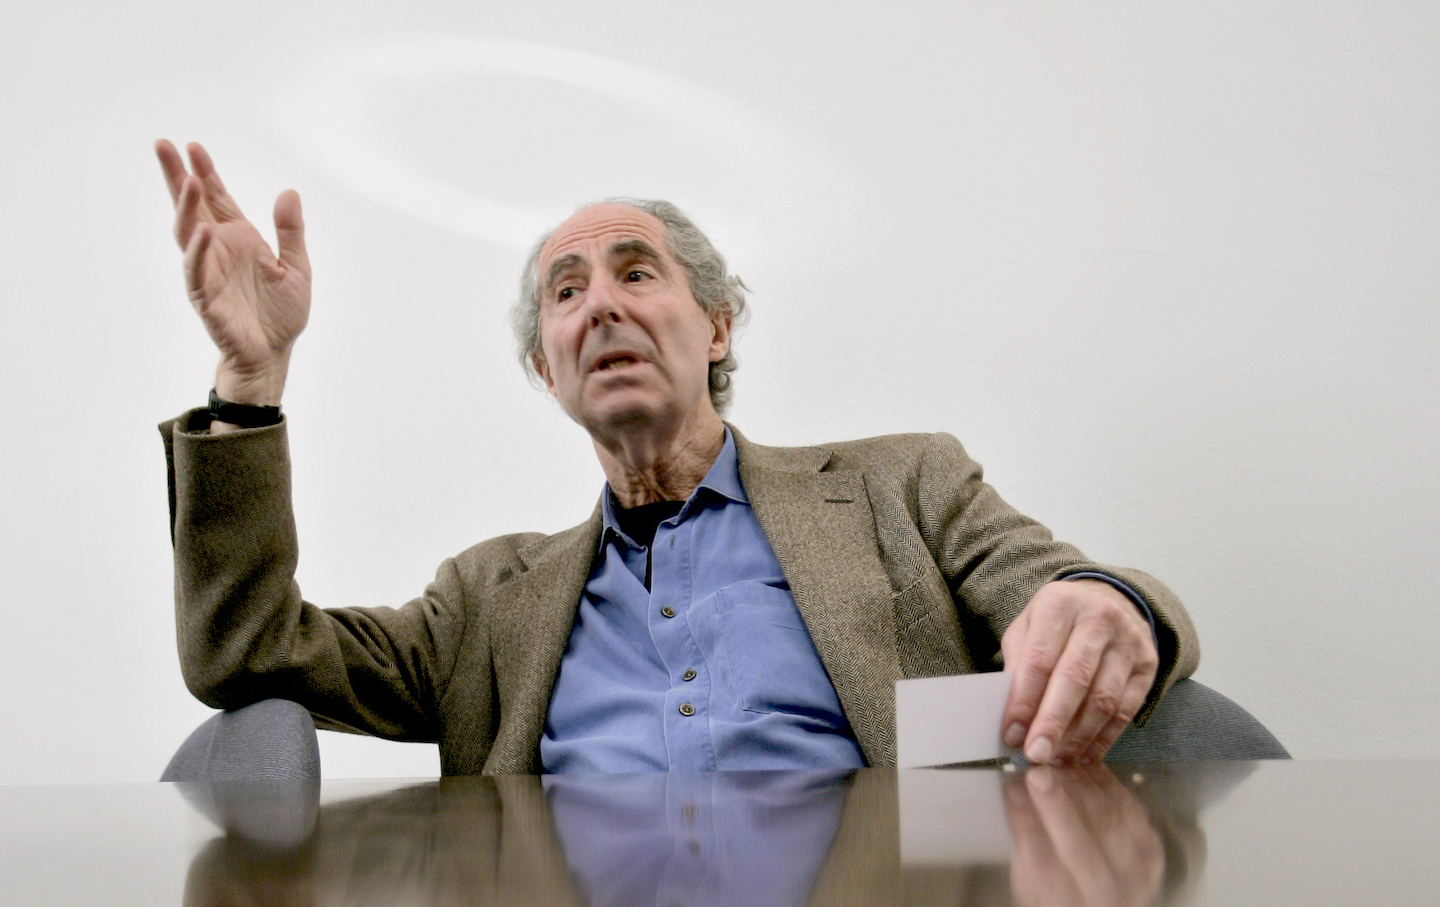 Philip Roth biography